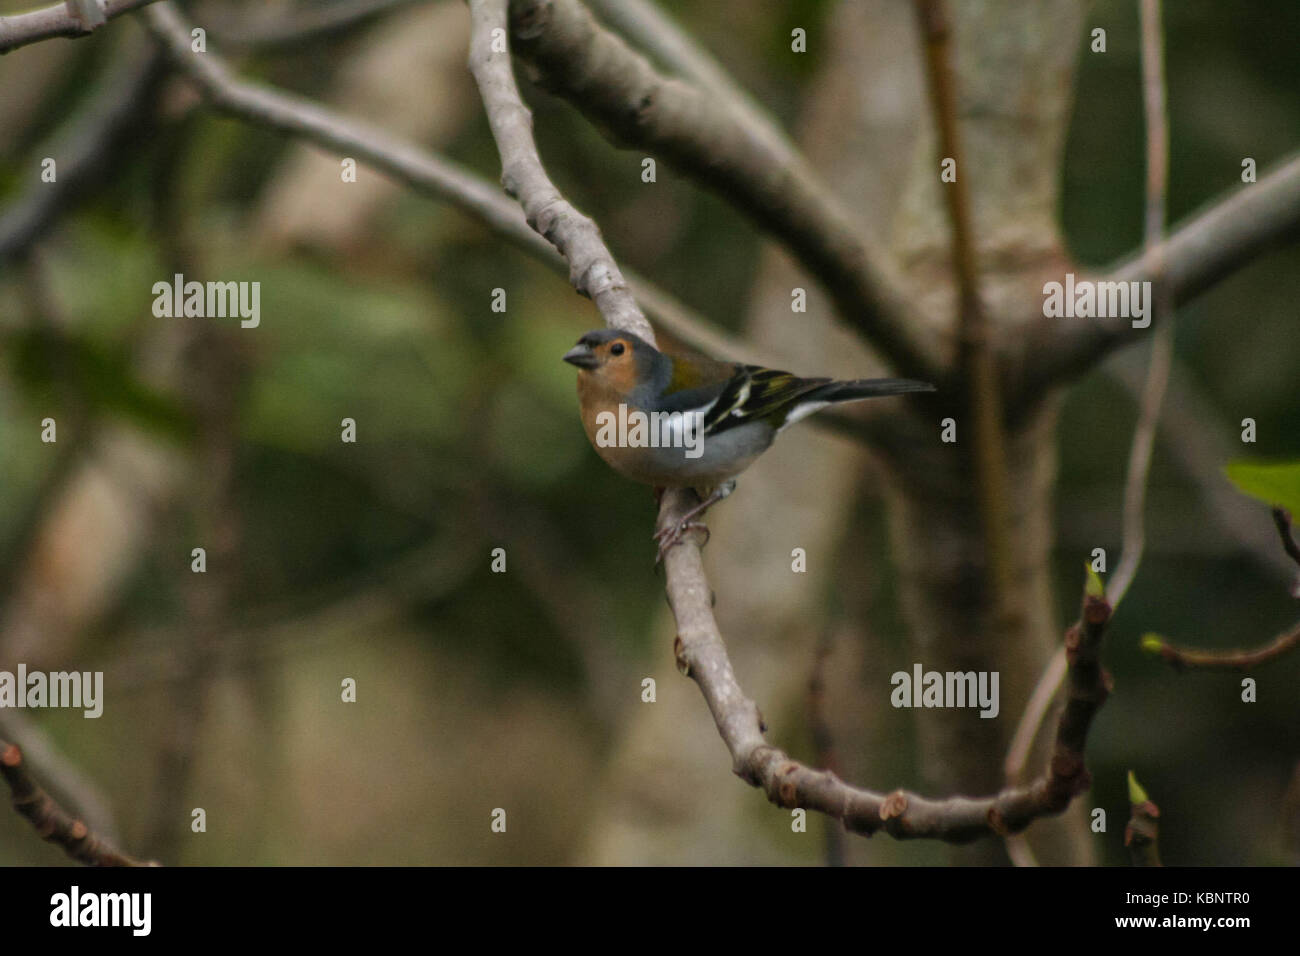 Chaffinch Madeira island - Stock Image